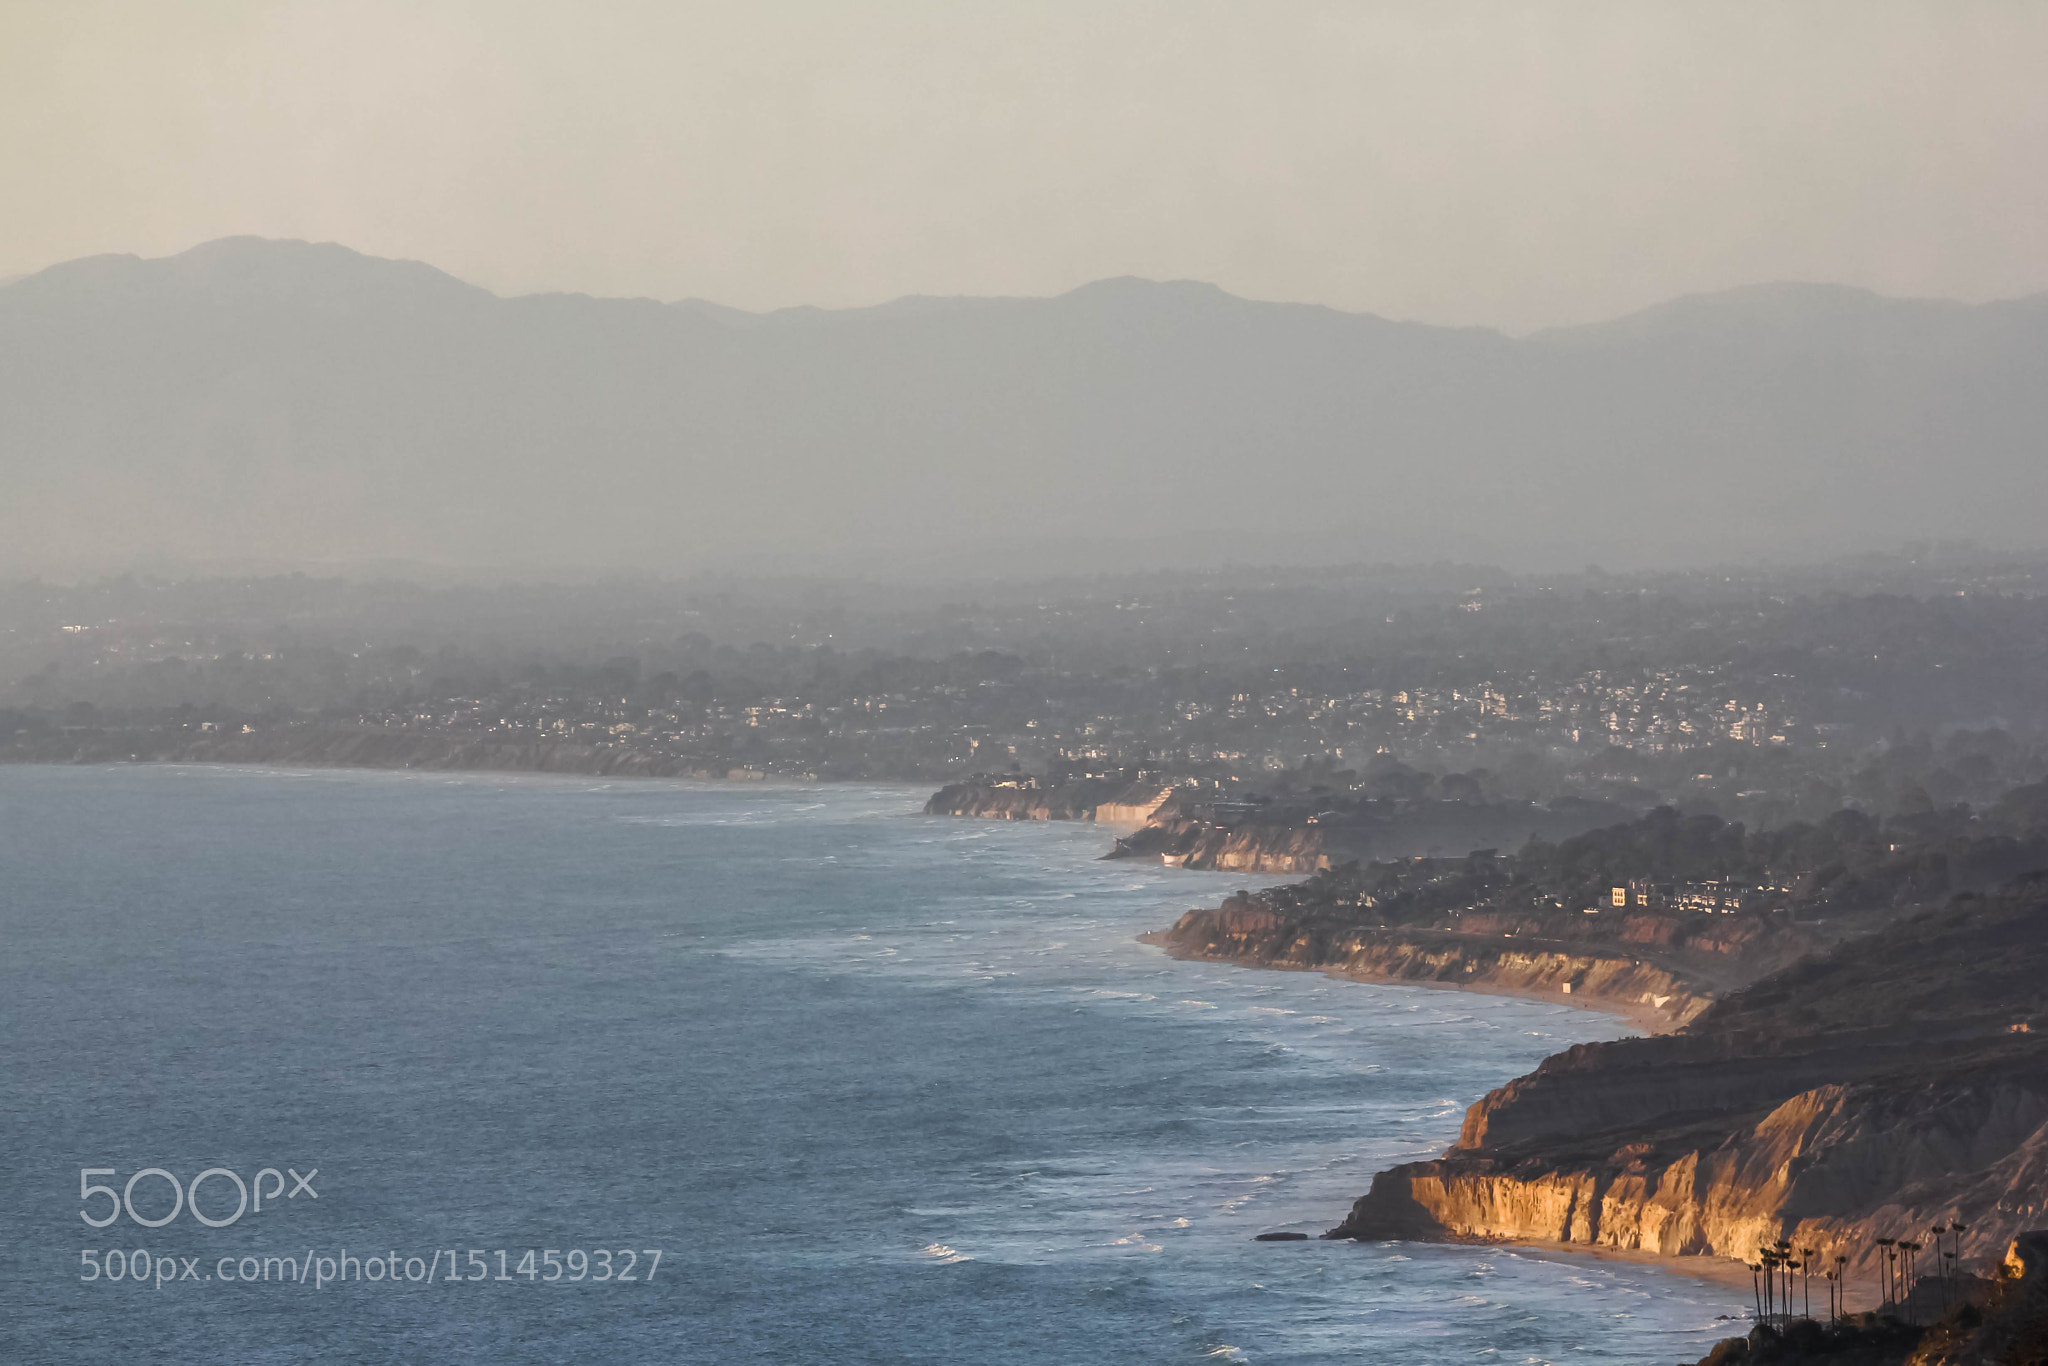 The Pacific coast from Mount Soledad, San Diego